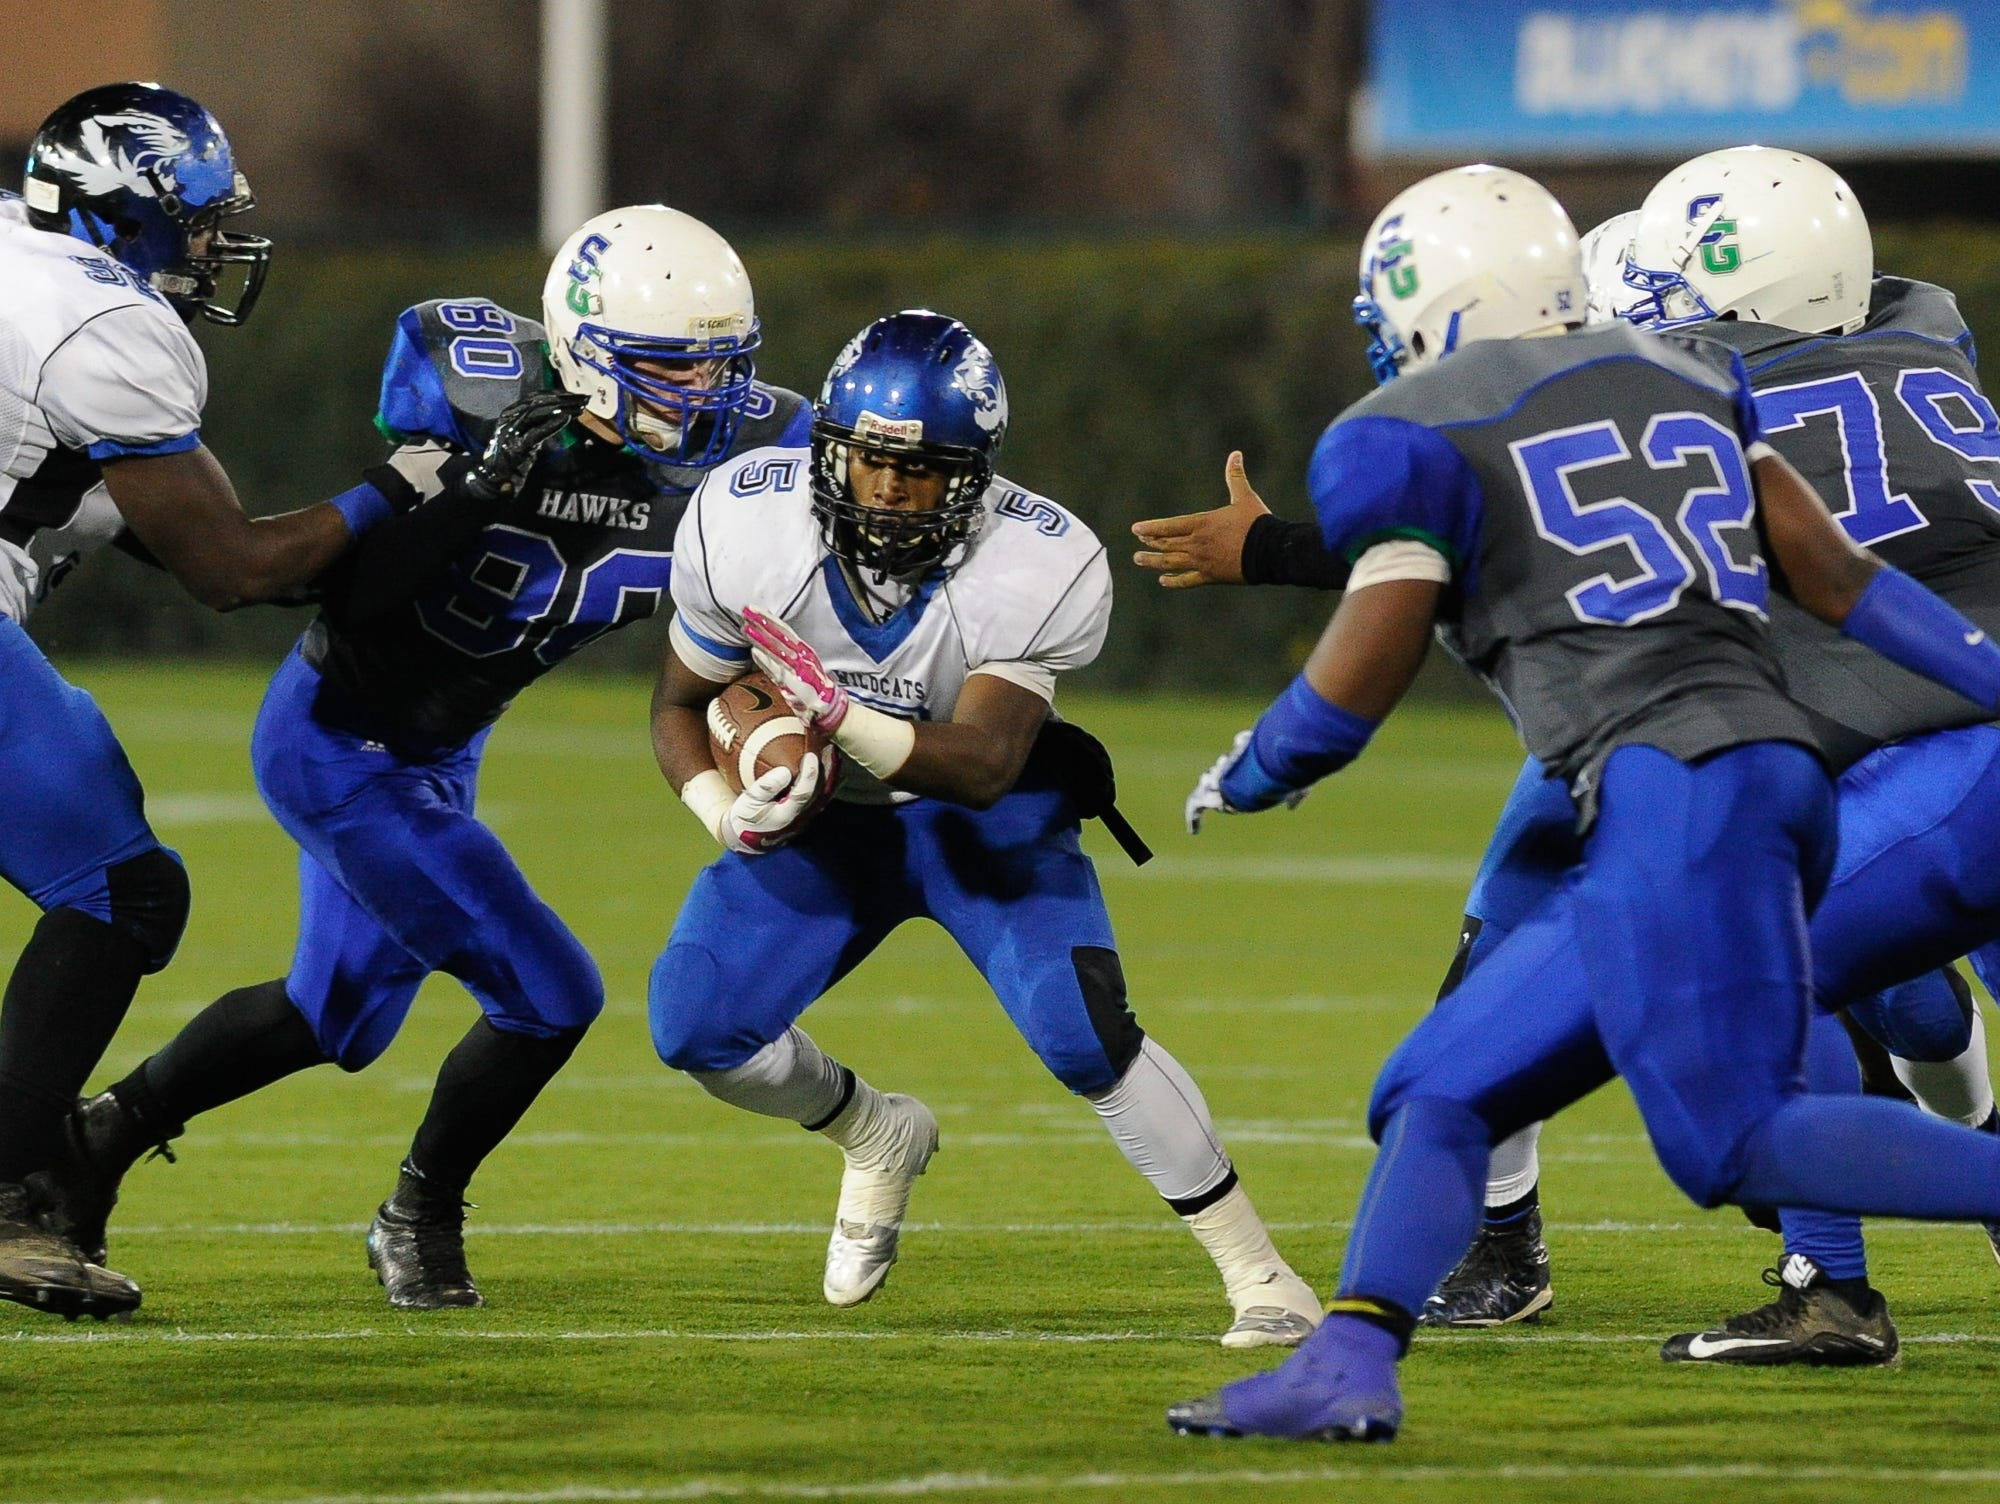 Howard's #5 Gerald Wiggins runs the ball during the Division II championship against St. Georges.